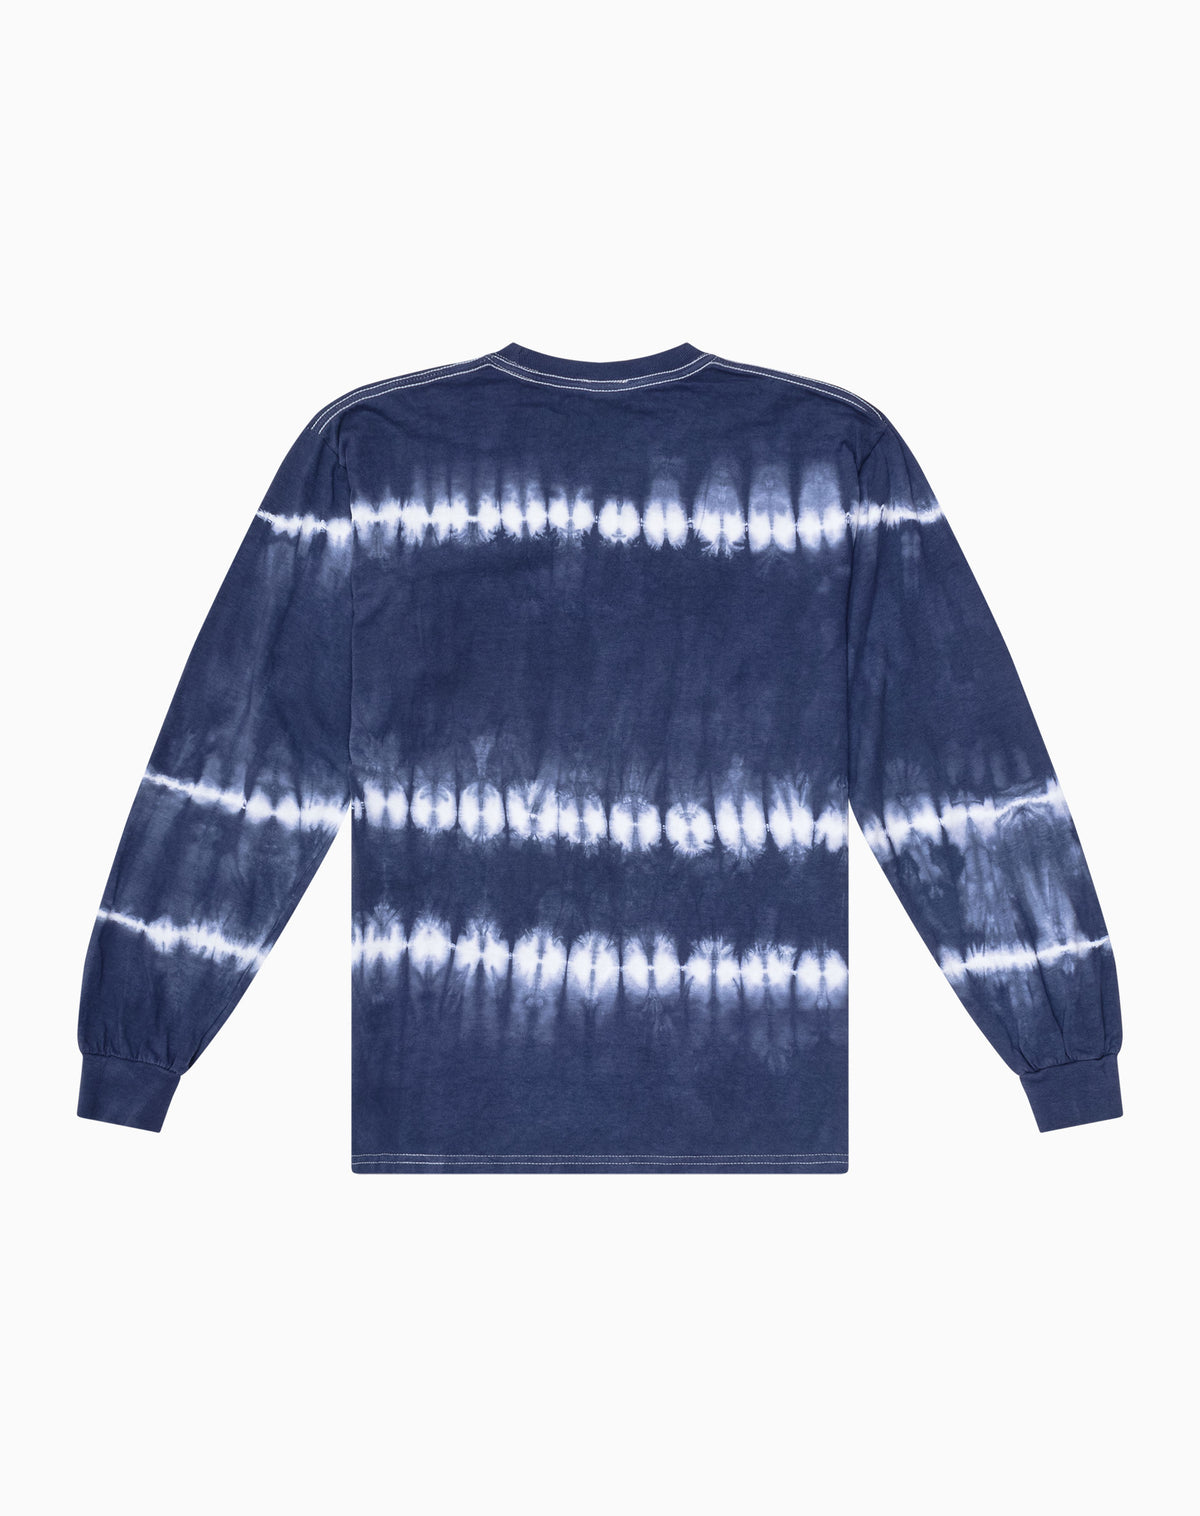 Sailor Stripe Tie-Dye